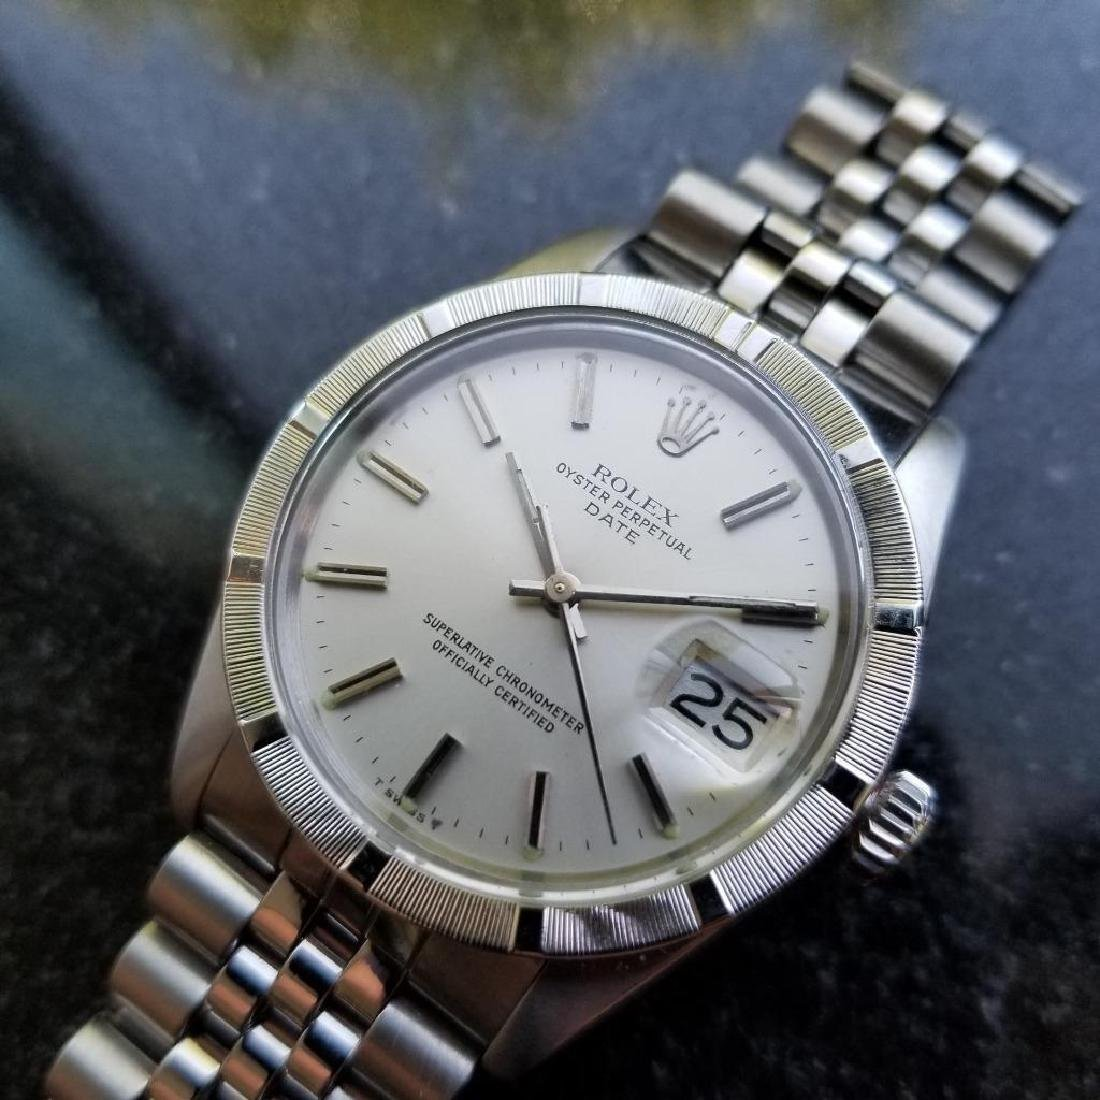 Rolex Oyster Perpetual 1501 Date Vintage 1977 Auto 35mm